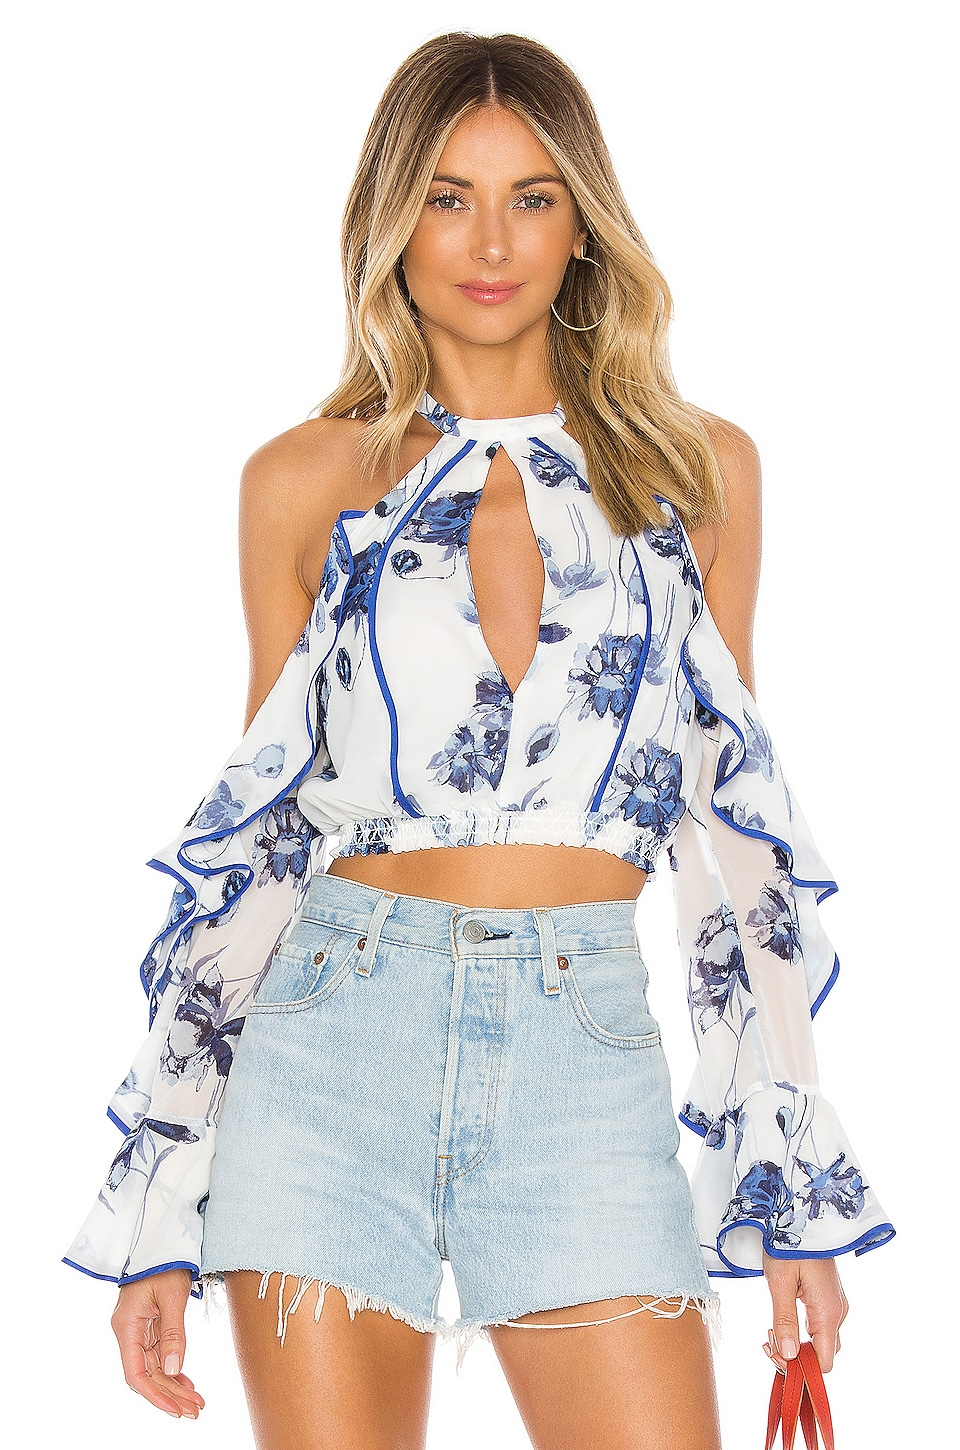 House of Harlow 1960 Harmony Top in Floral Multi